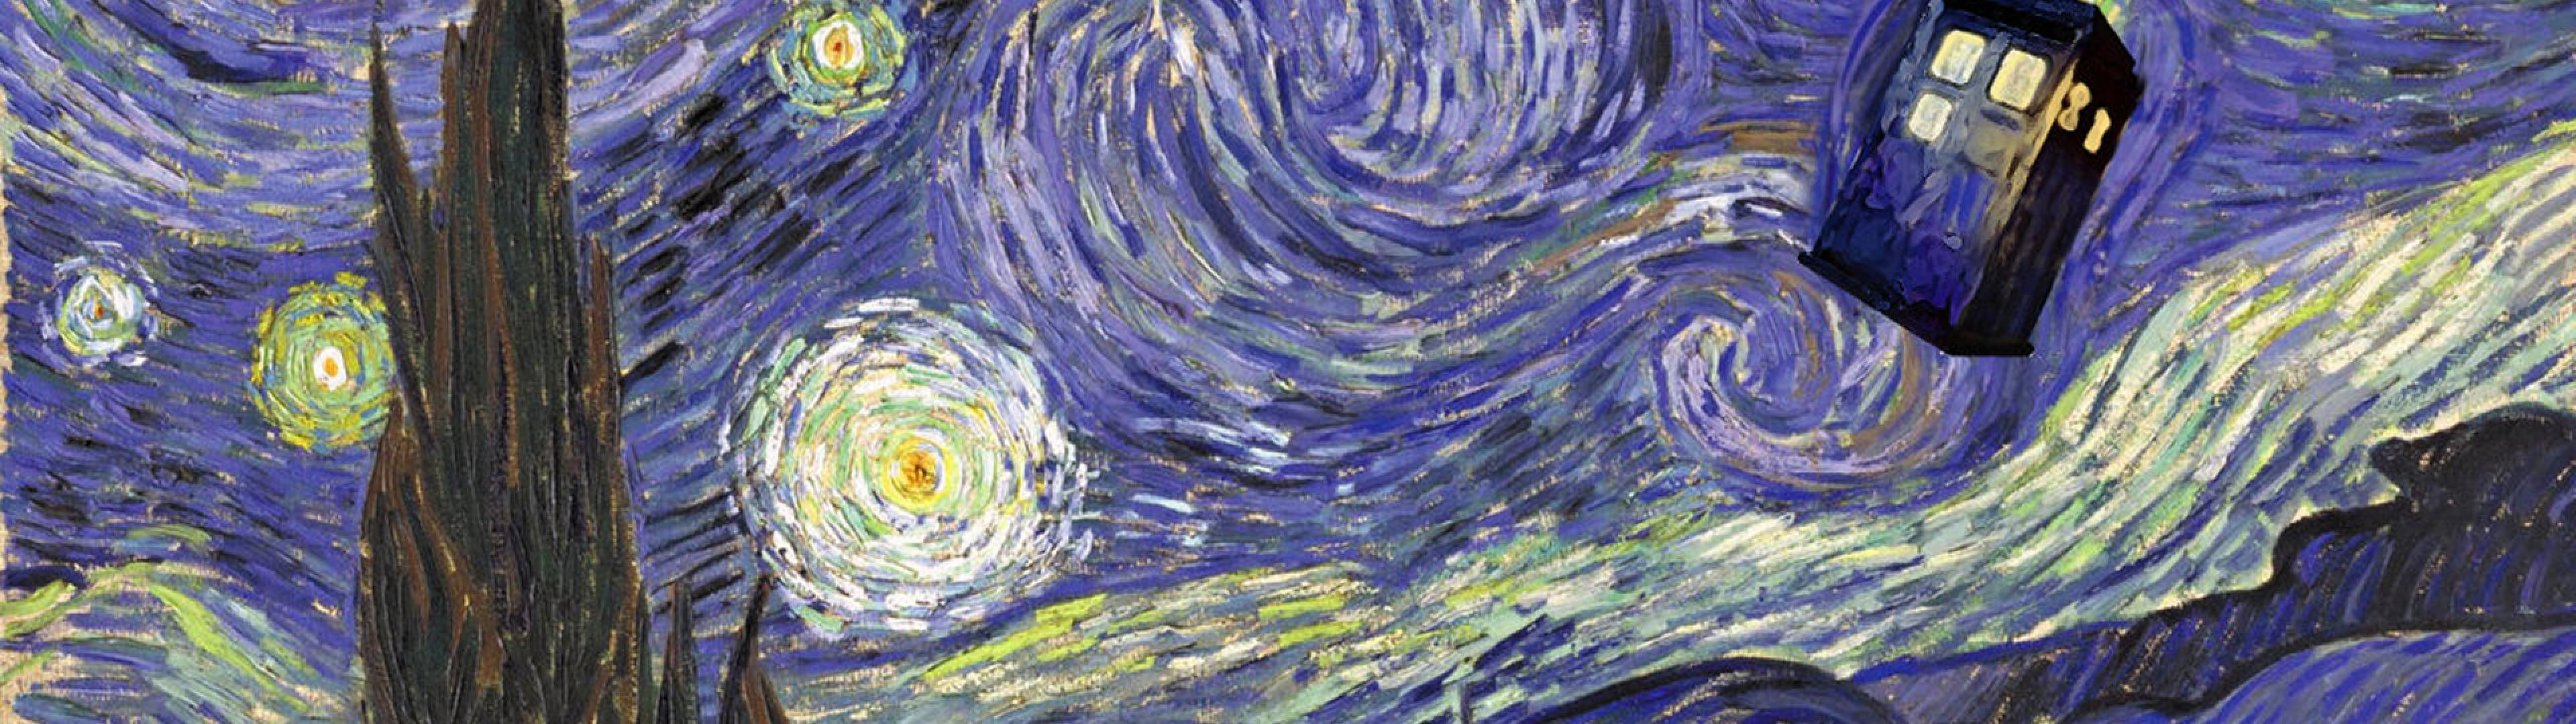 doctor who starry night tardis vincent van gogh Ultra or Dual High .